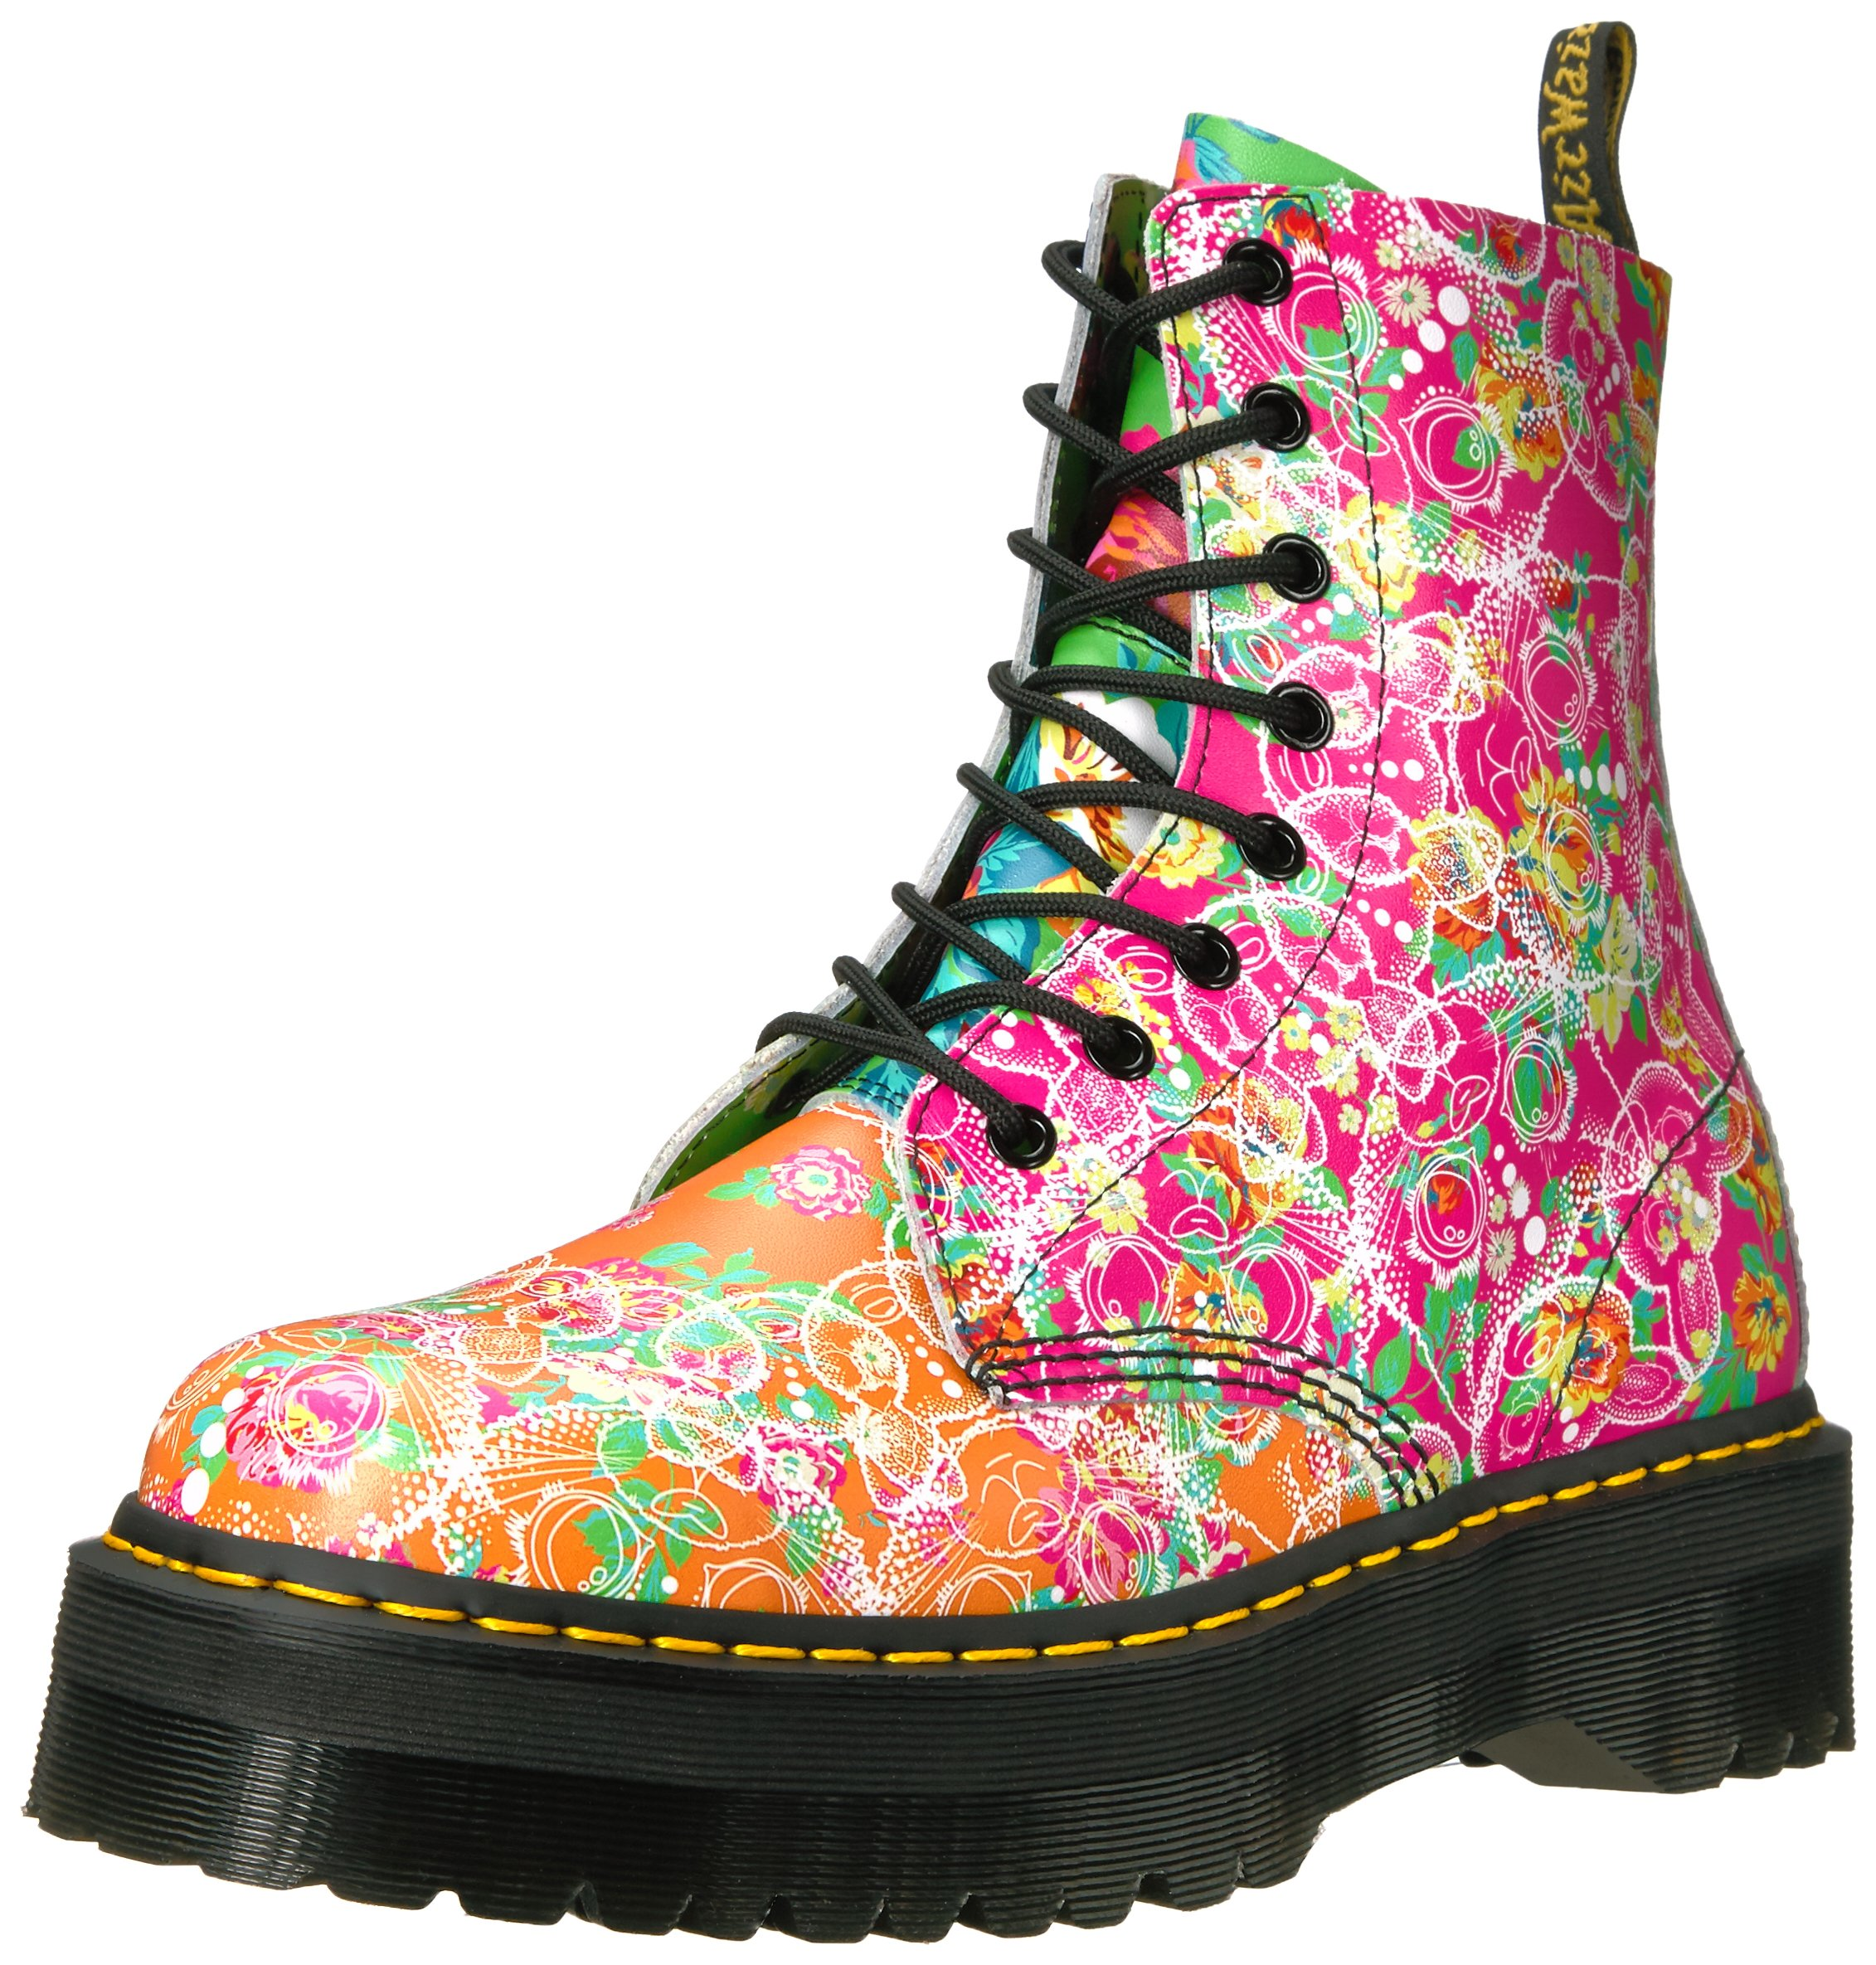 Dr. Martens Women's Jadon Daze Fashion Boot, Multi Daze, 6 Medium UK (8 US) by Dr. Martens